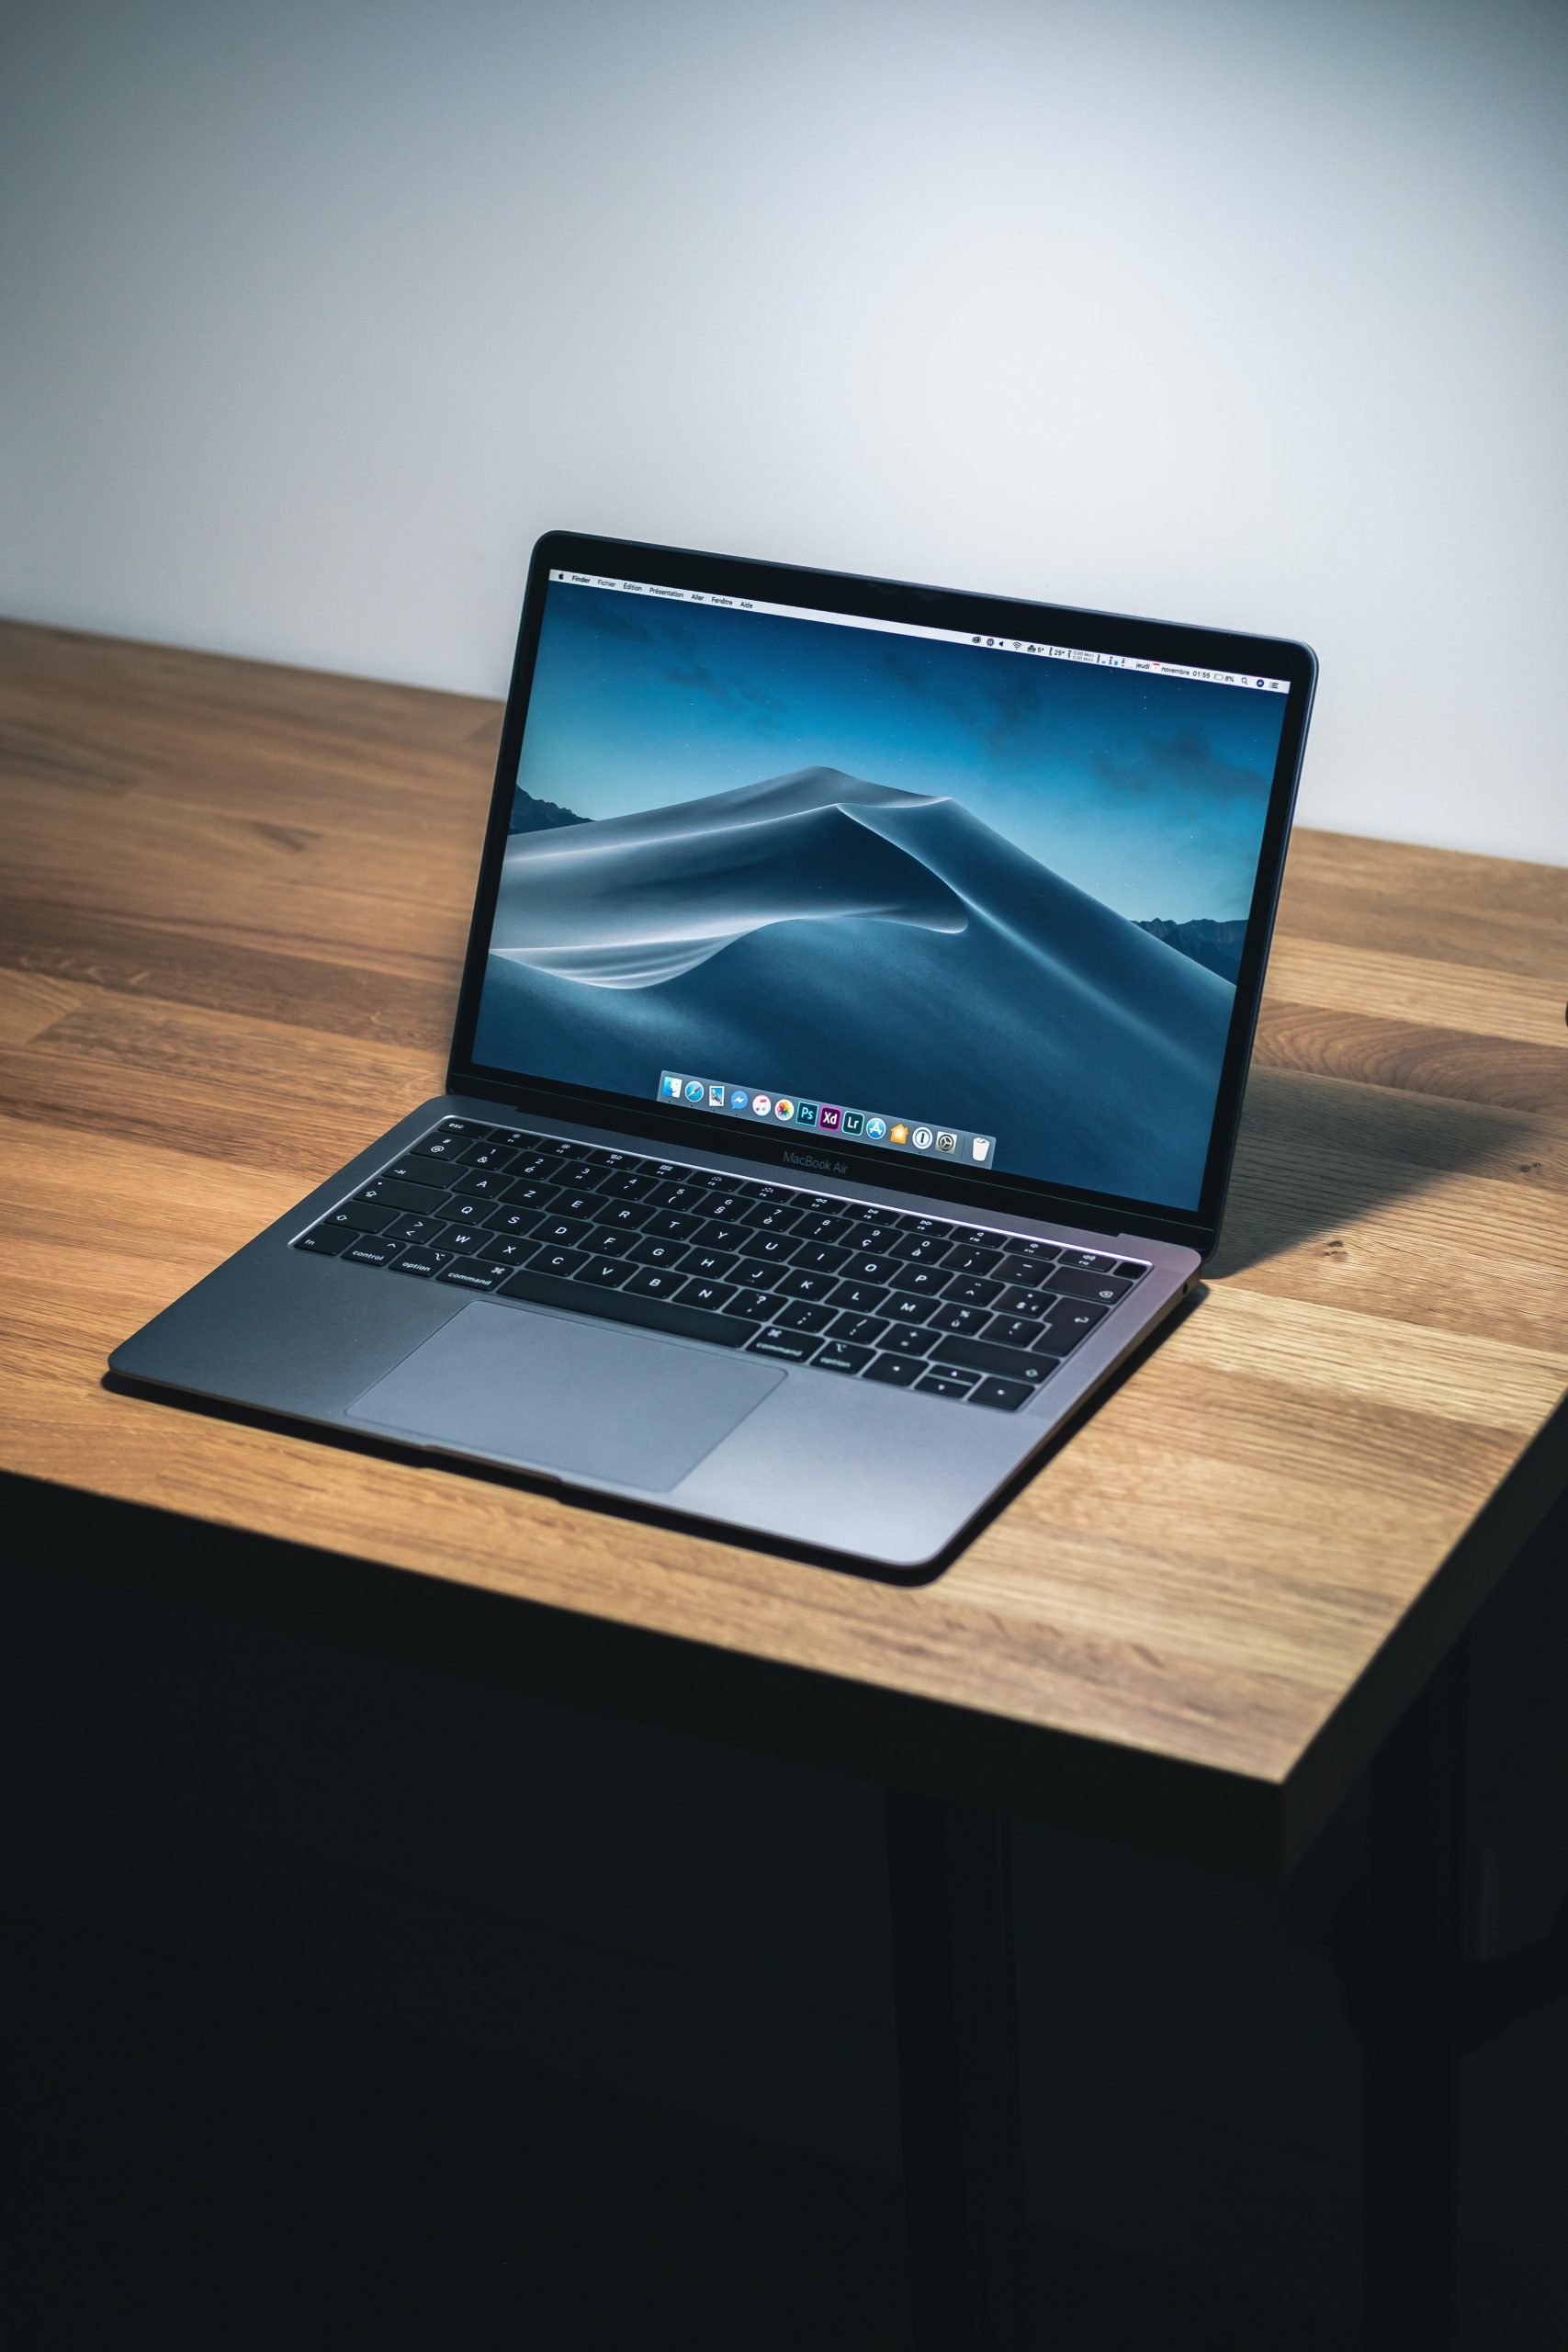 Laptop on desk with mountain